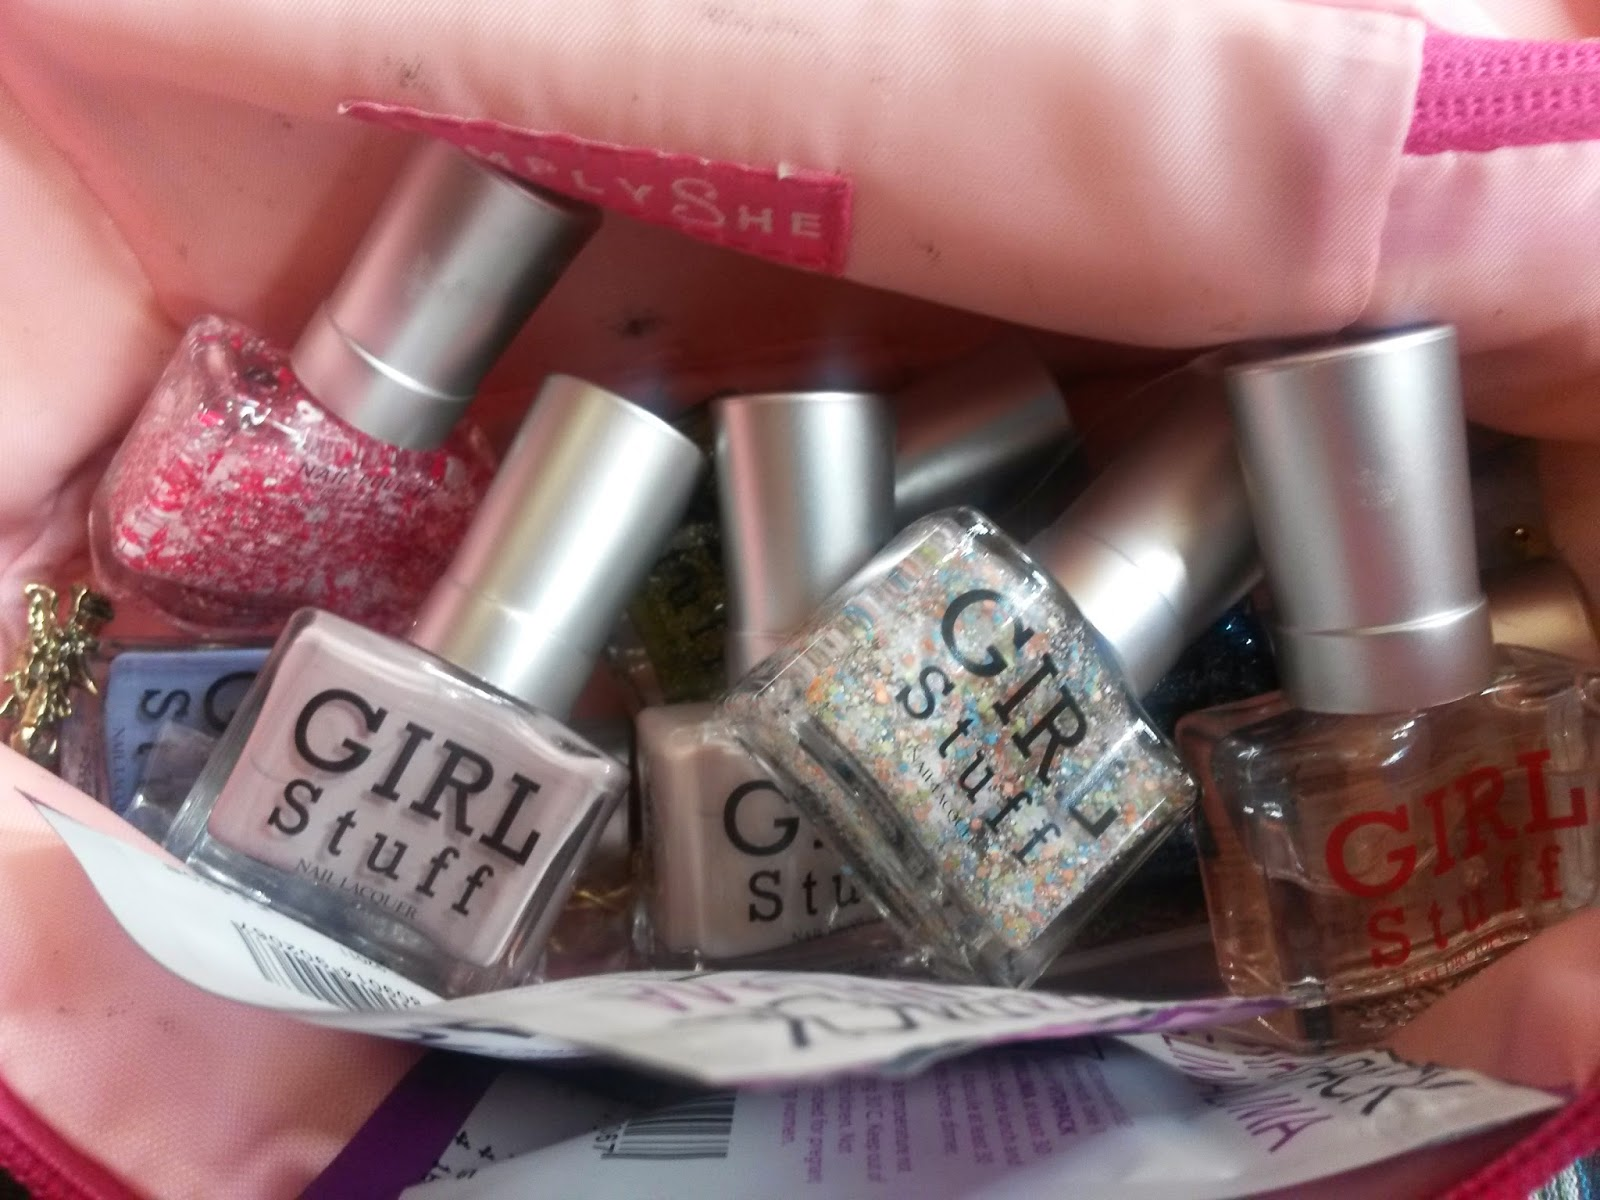 Glow in the Dark Nails with Girl Stuff Solique - Top Beauty ...